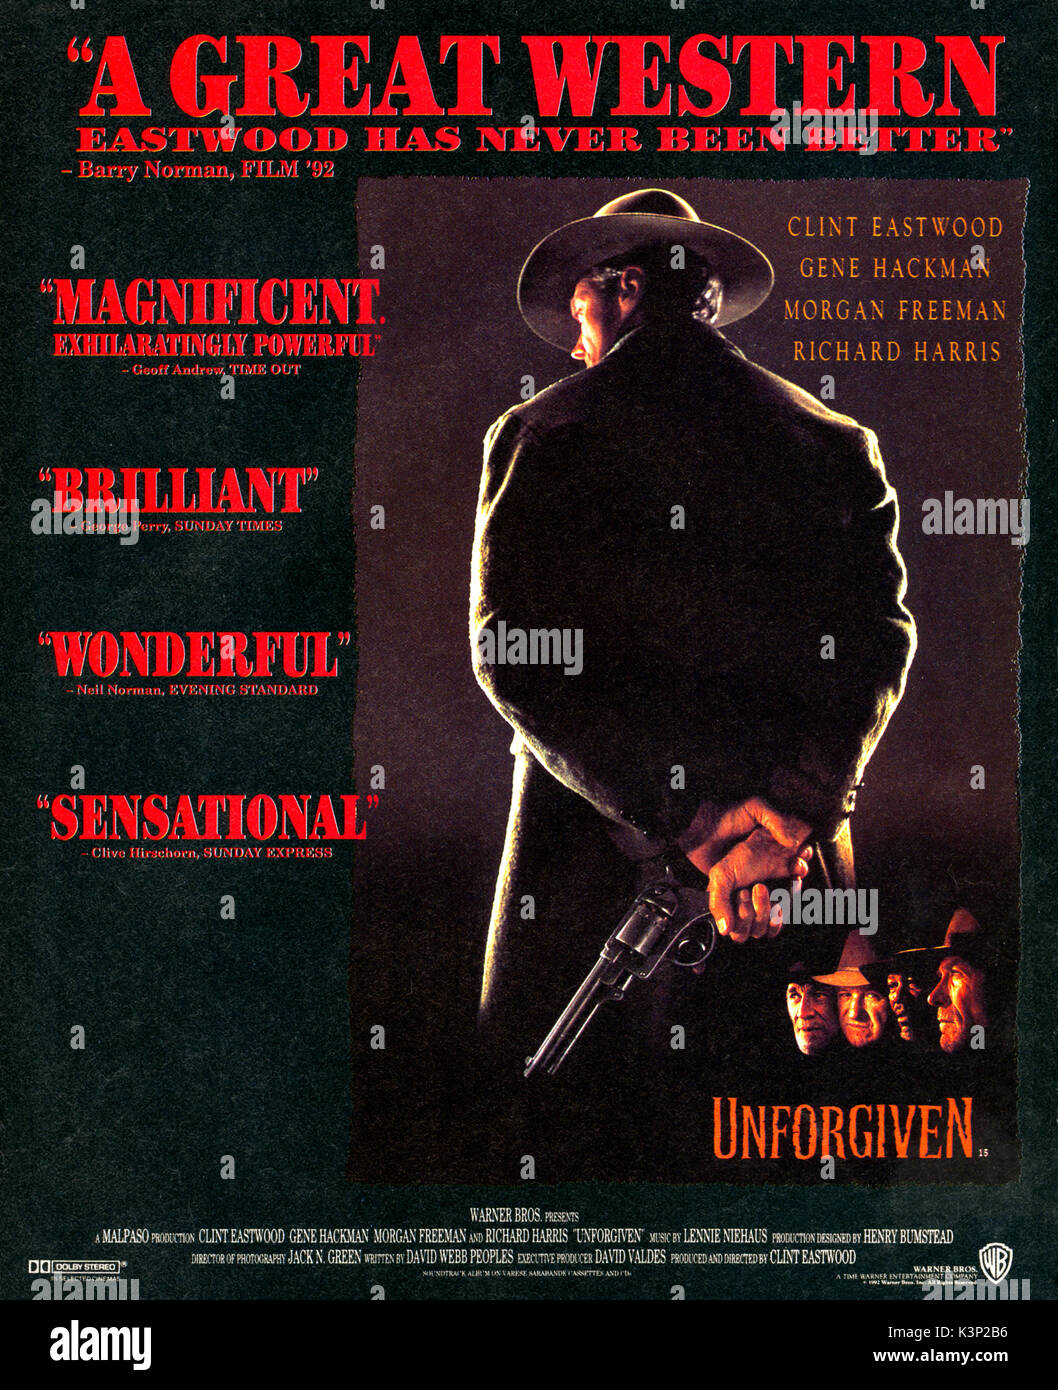 UNFORGIVEN [US 1992] CLINT EASTWOOD, RICHARD HARRIS, MORGAN FREEMAN, GENE HACKMAN     Date: 1992 Stock Photo